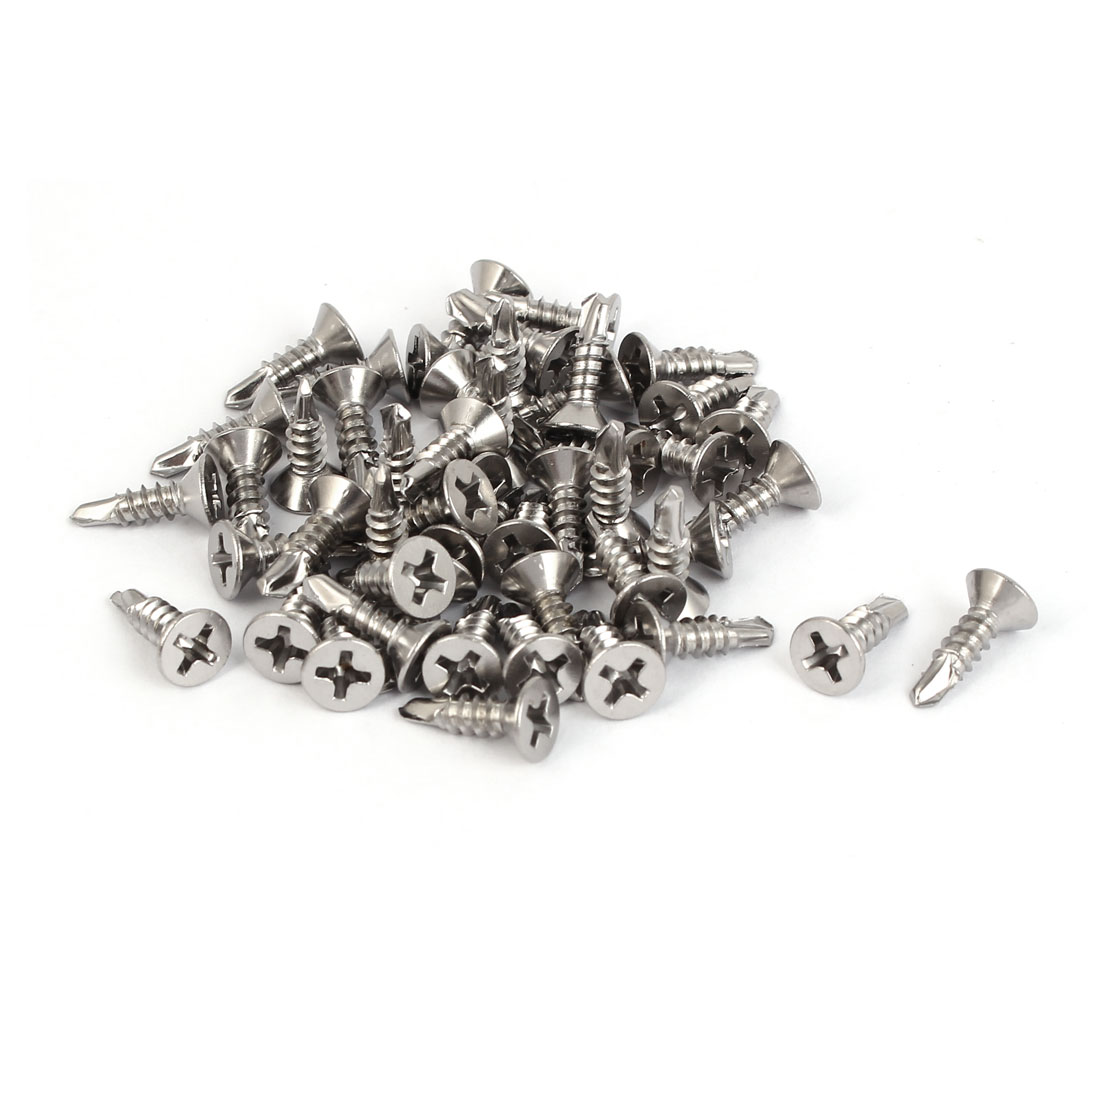 M3.5x13mm #6-20 410 Stainless Steel Self Drilling Countersunk Head Screws 50 Pcs